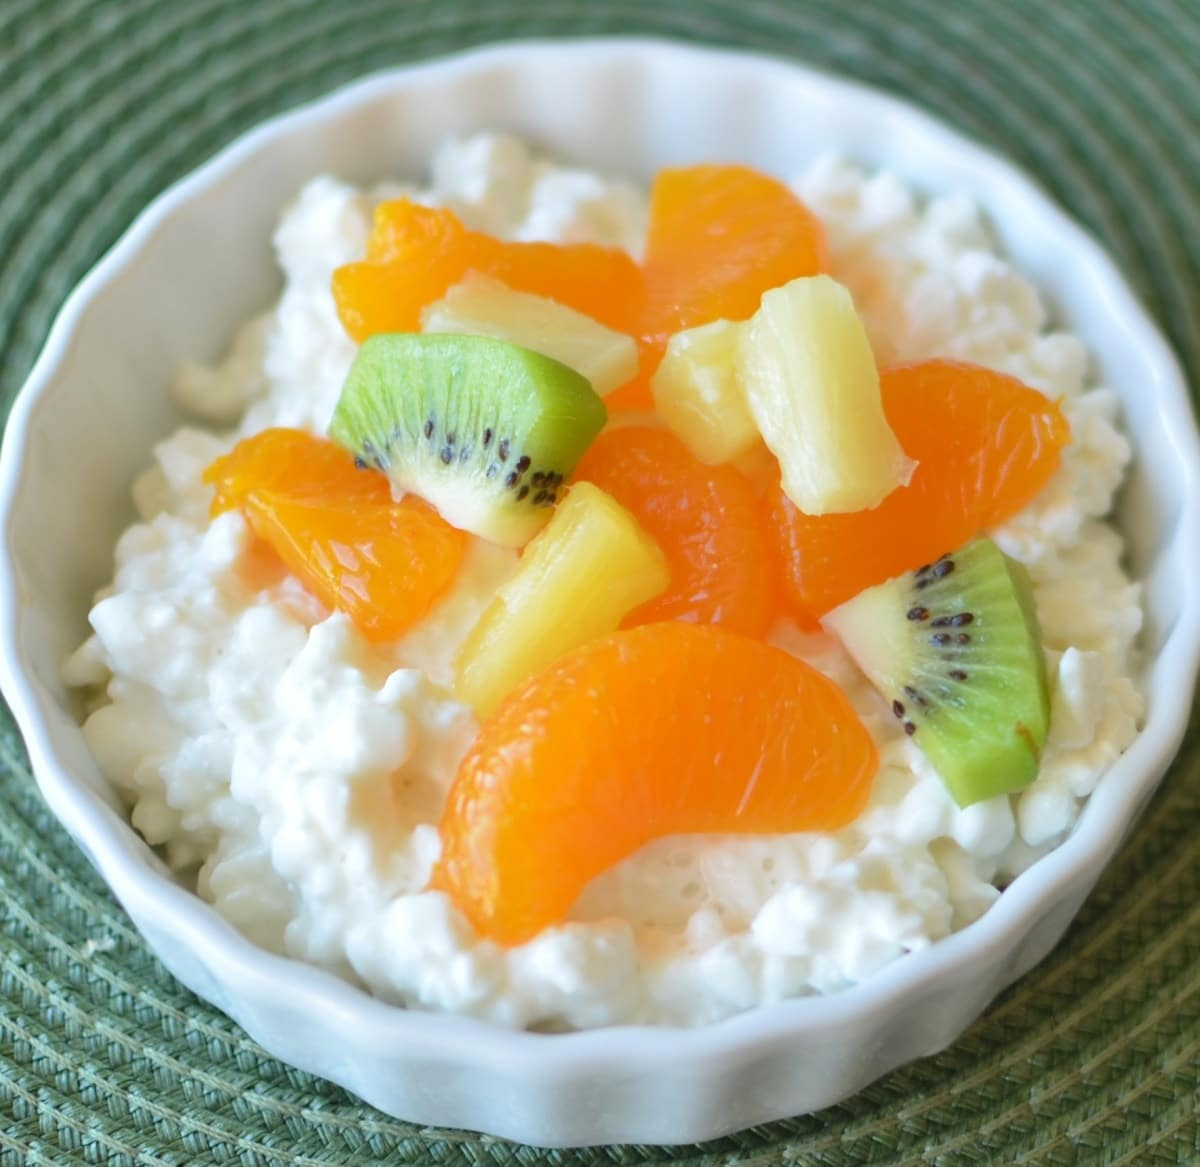 Magnificent Cottage Cheese And Mixed Fruit Download Free Architecture Designs Scobabritishbridgeorg